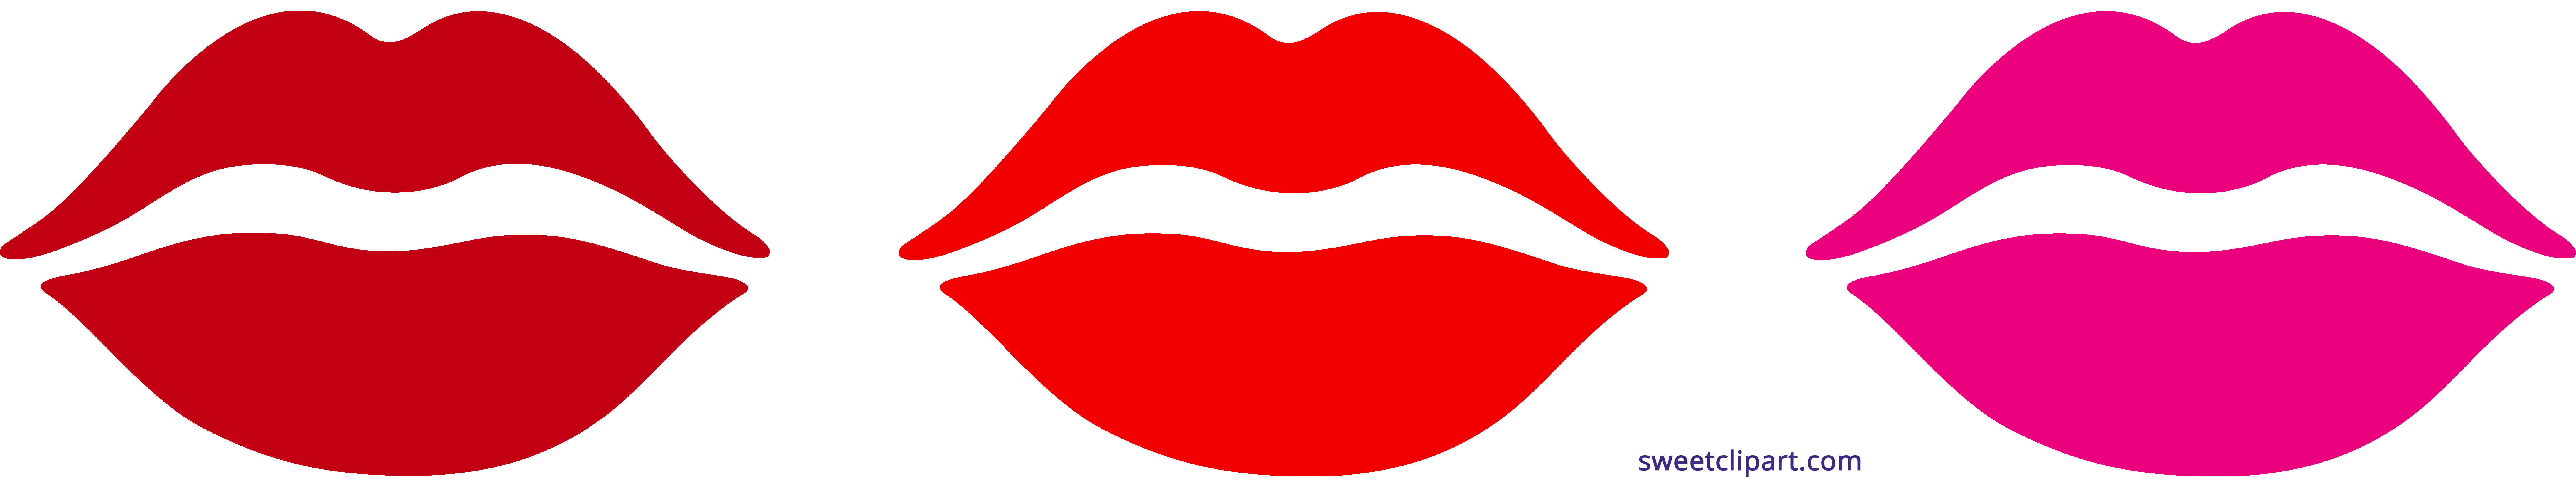 Lipstick clipart object. Lips kisses sweet clip